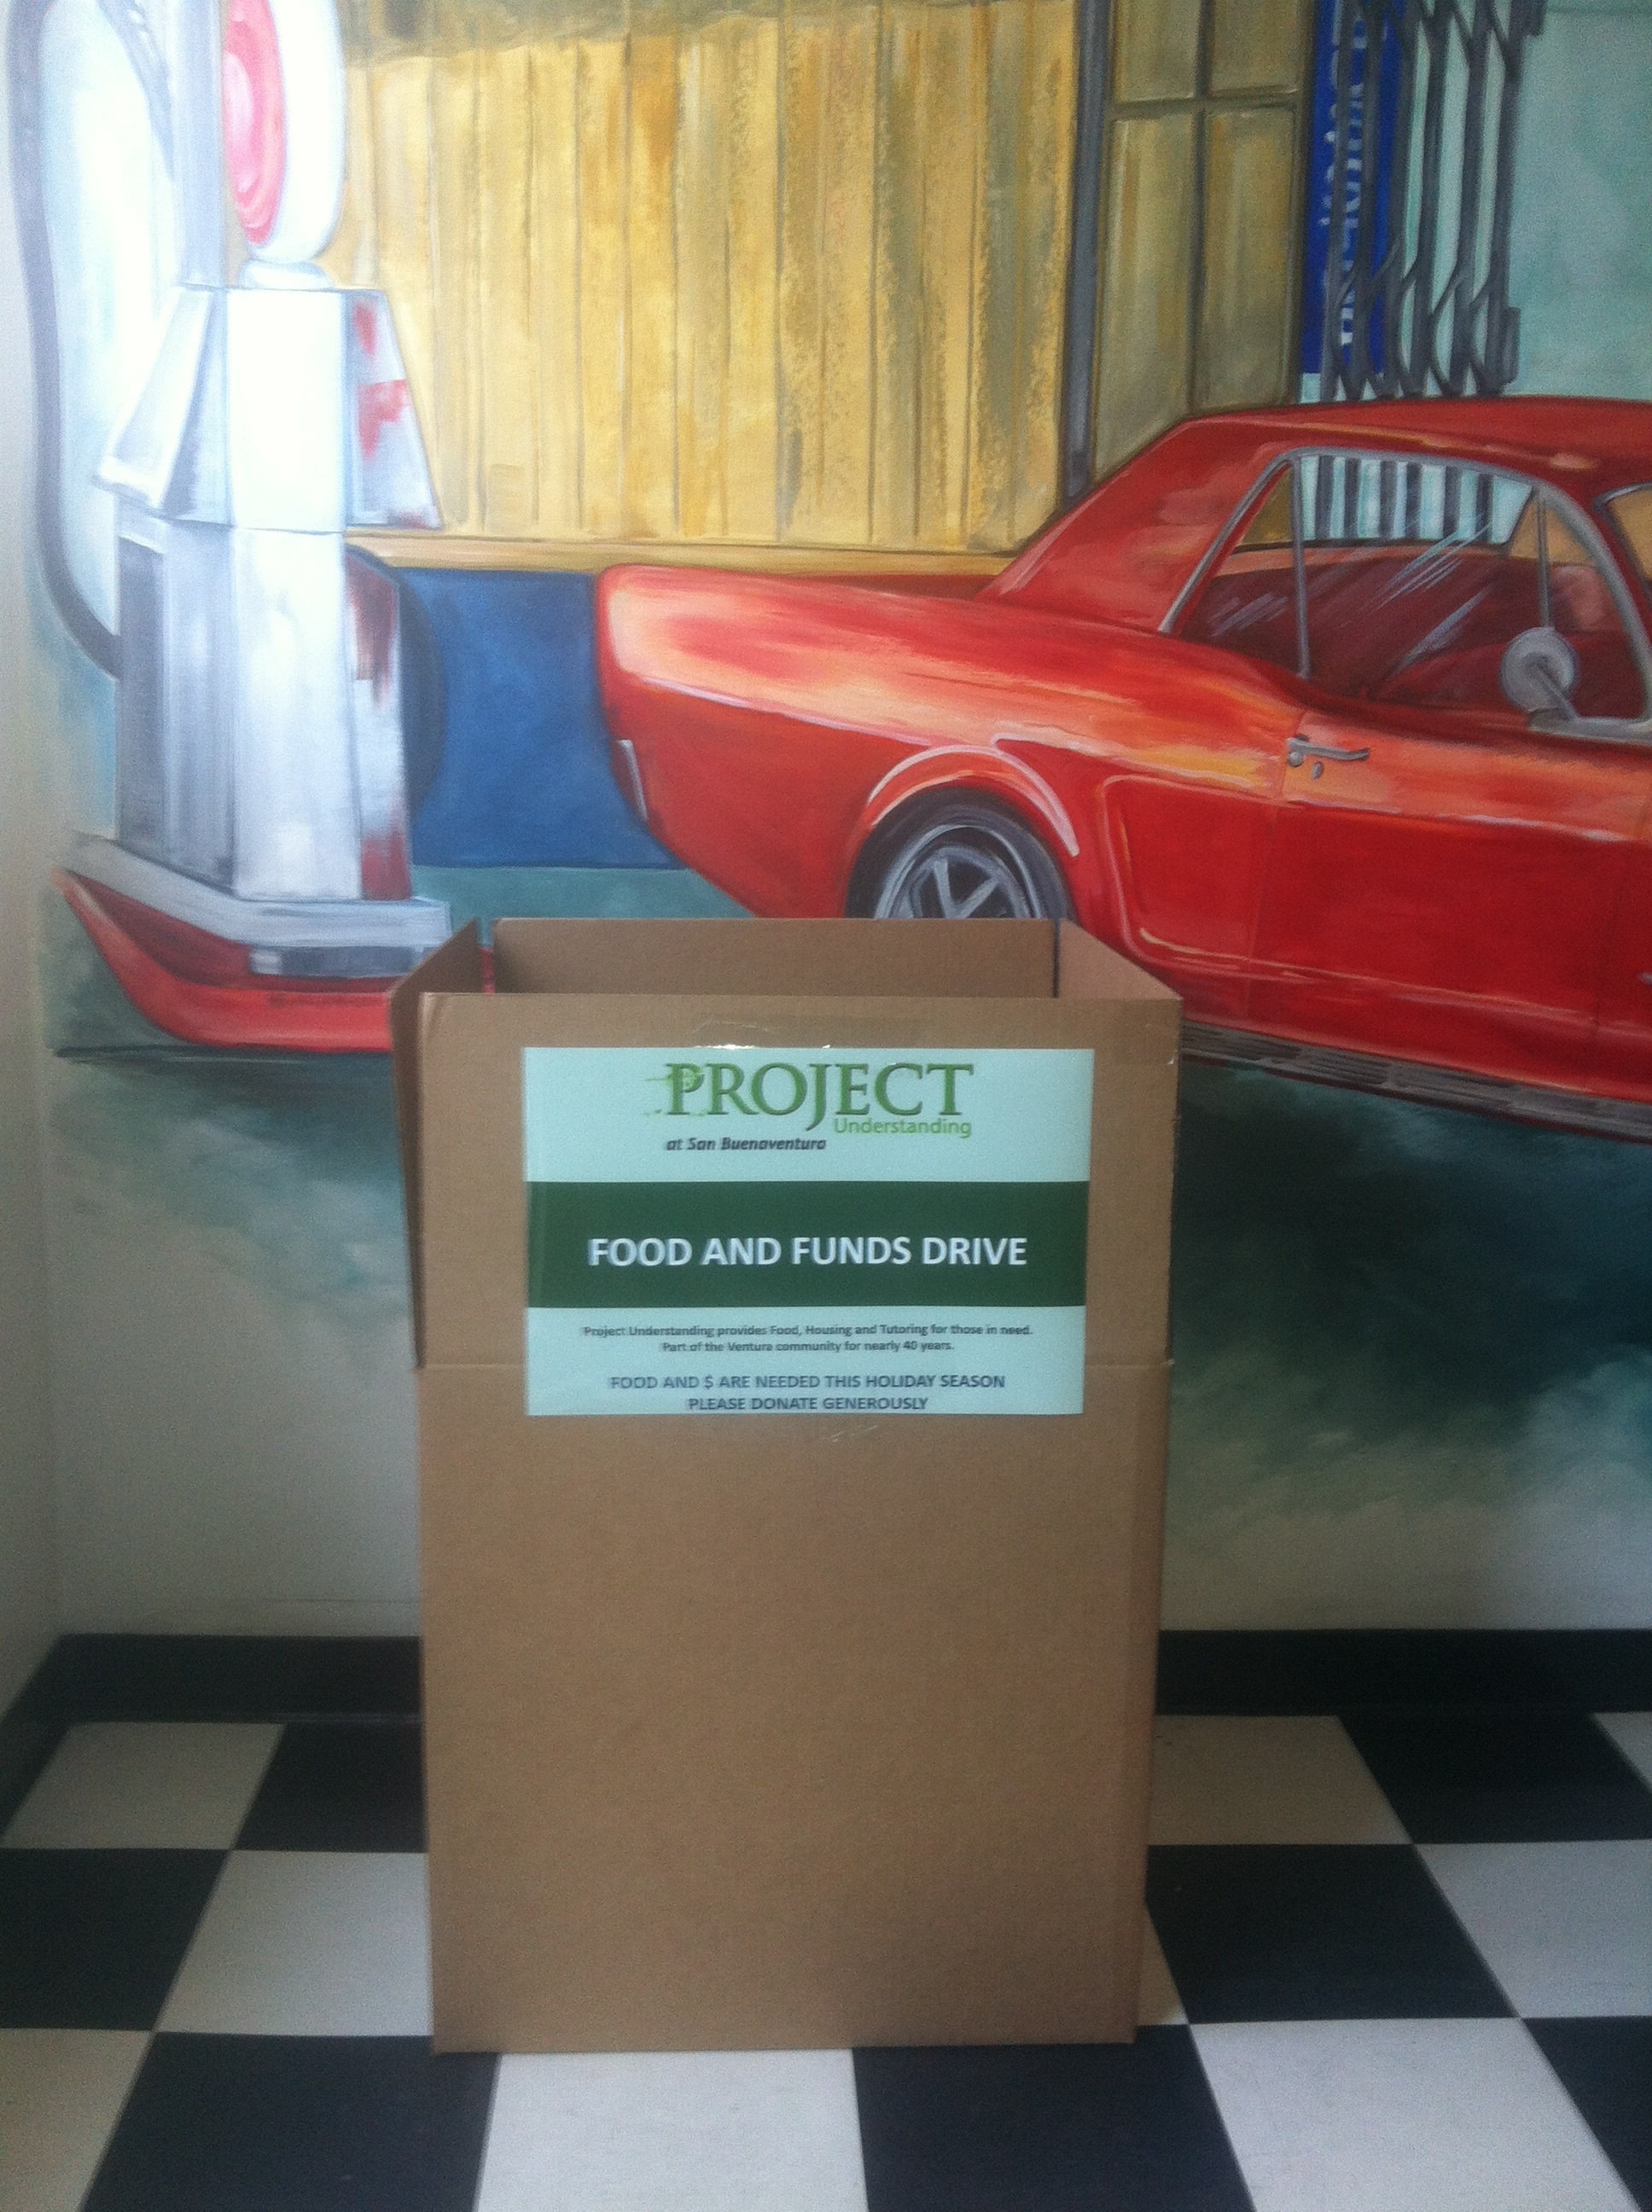 AWS Automotive Ventura Auto Repair Food and Funds Drive Initiative